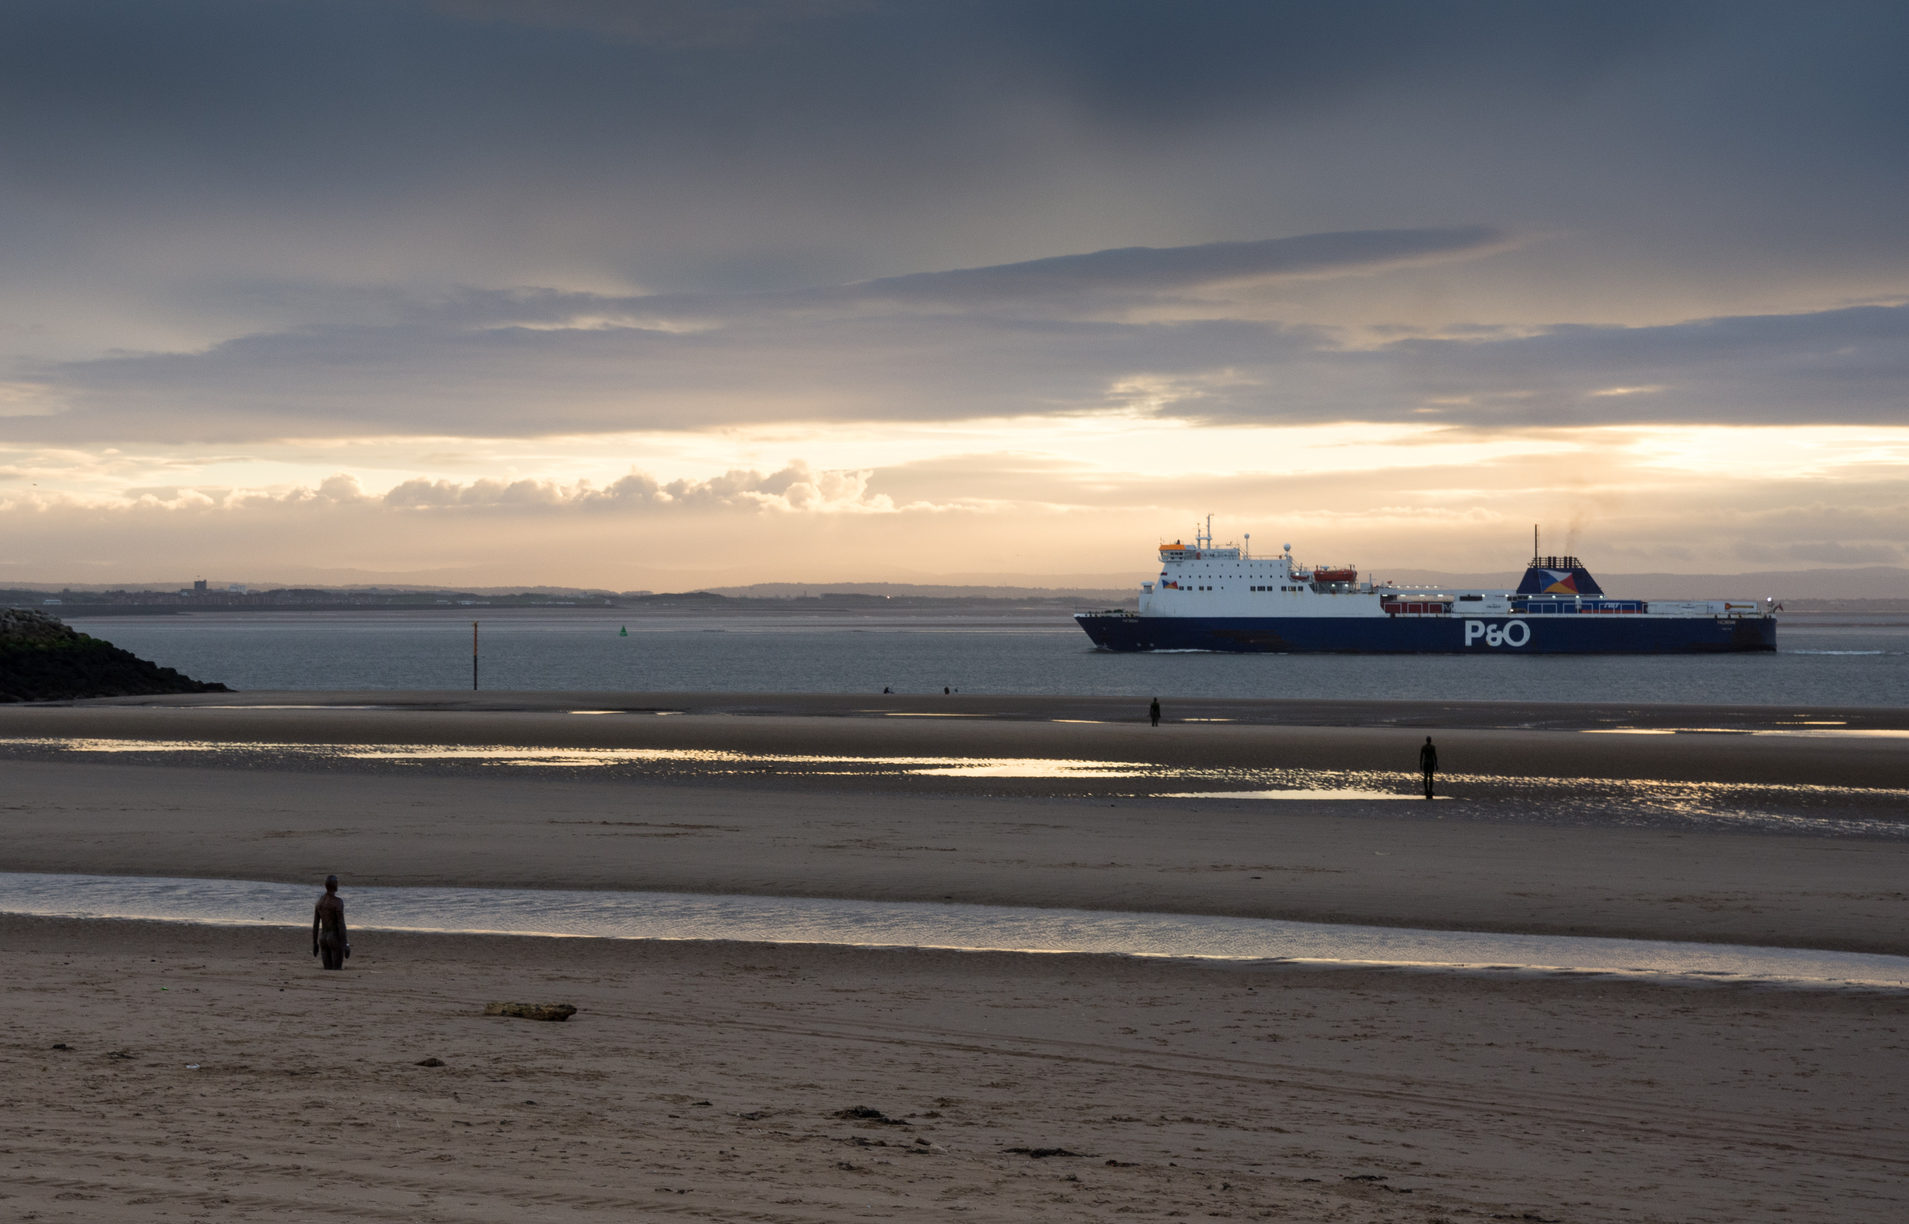 """A P&O Irish Sea ferry passes Antony Gormley's """"Another Place"""" sculptures on Crosby Beach on entry to the Port of Liverpool. (iStock)"""